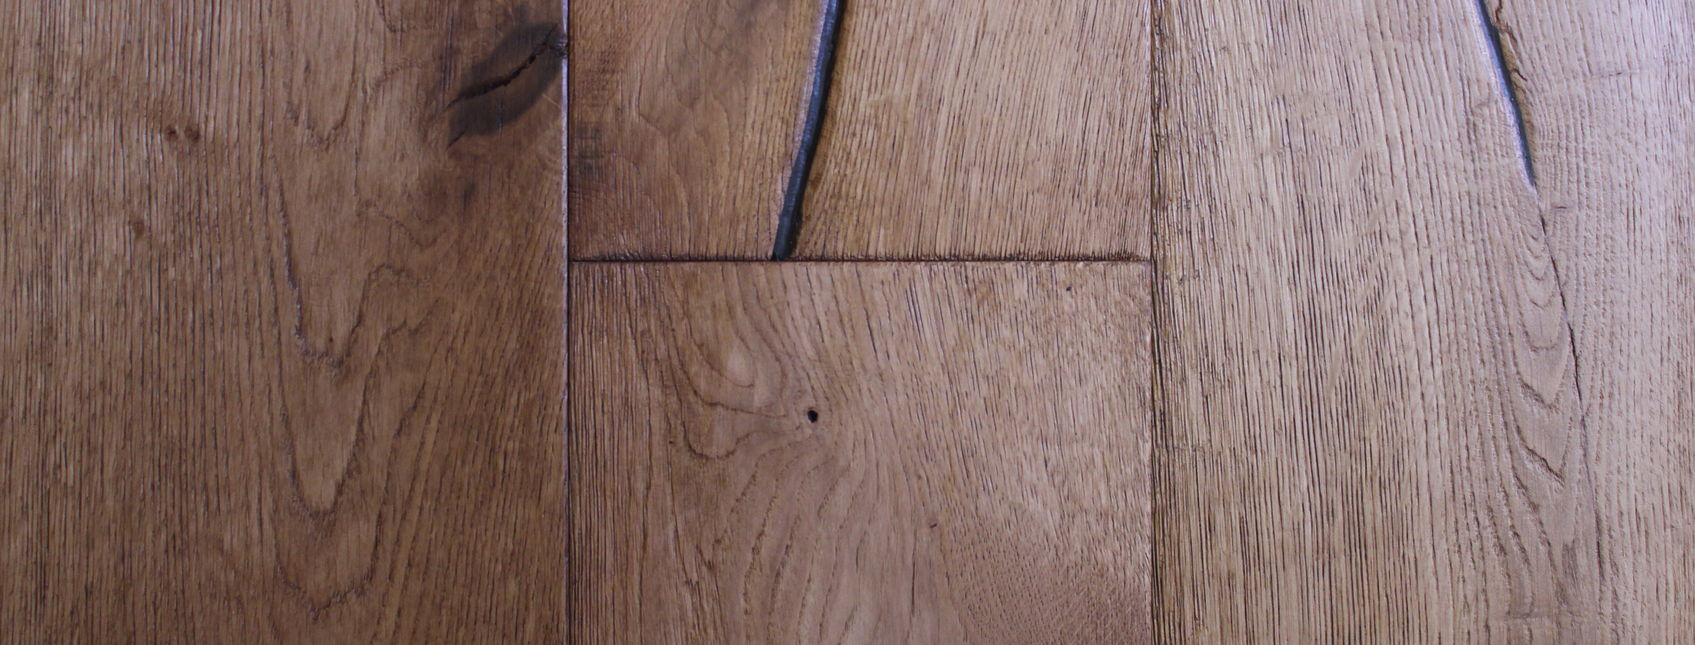 Brushed Textured Oak Flooring; Textured Engineered Oak Flooring